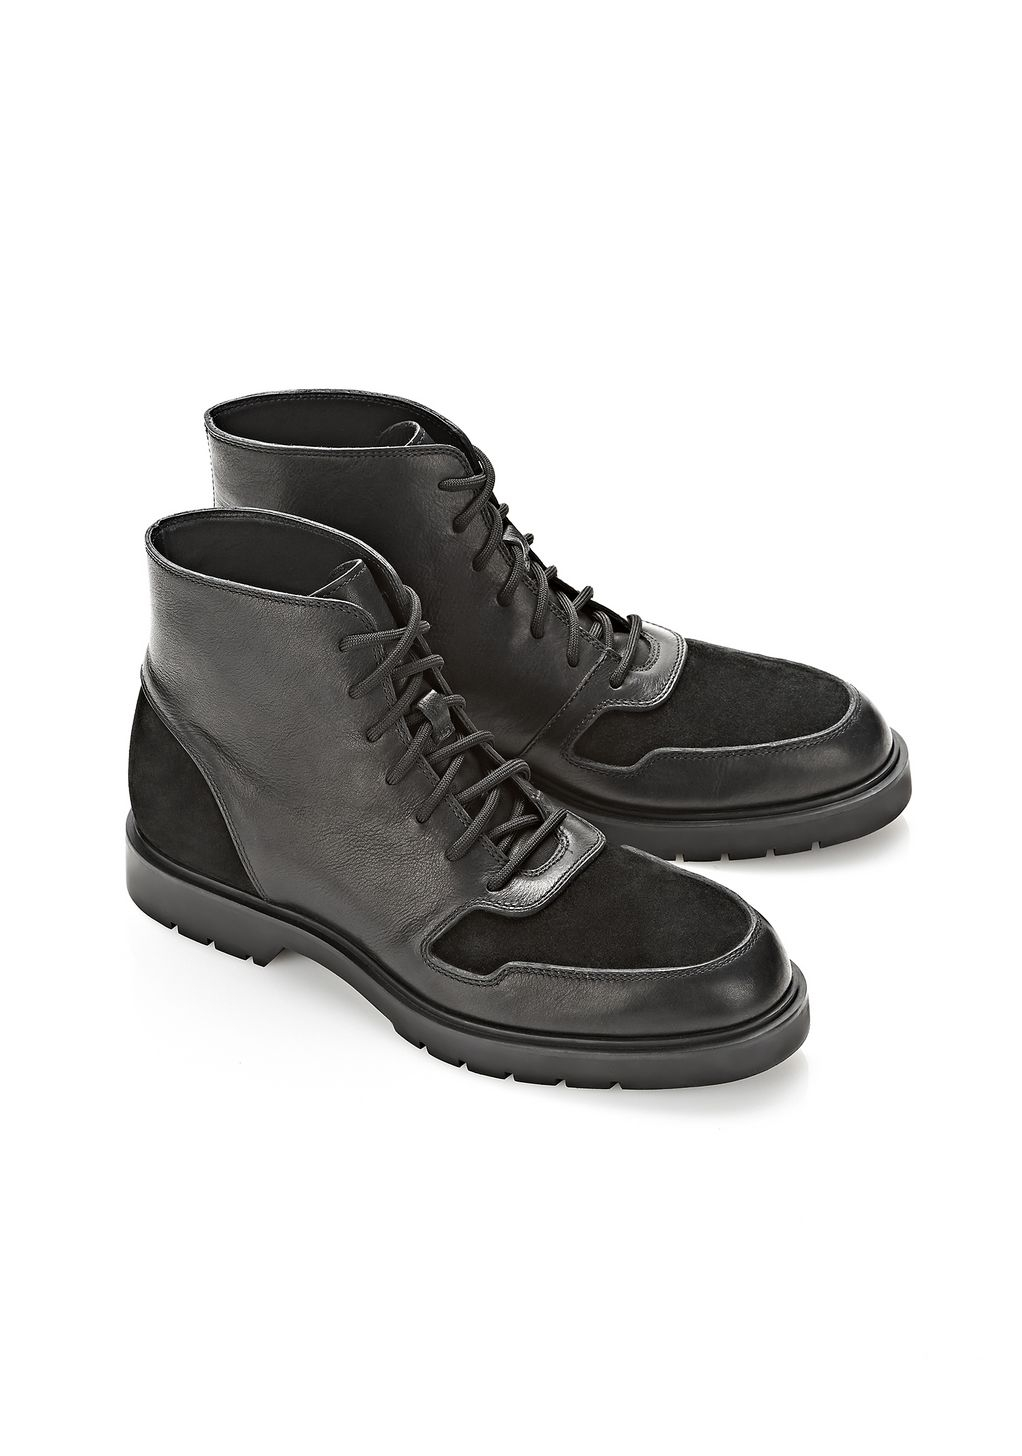 Free shipping on Alexander Wang shoes at skytmeg.cf Shop for boots, pumps, sandals and more. Totally free shipping and returns.